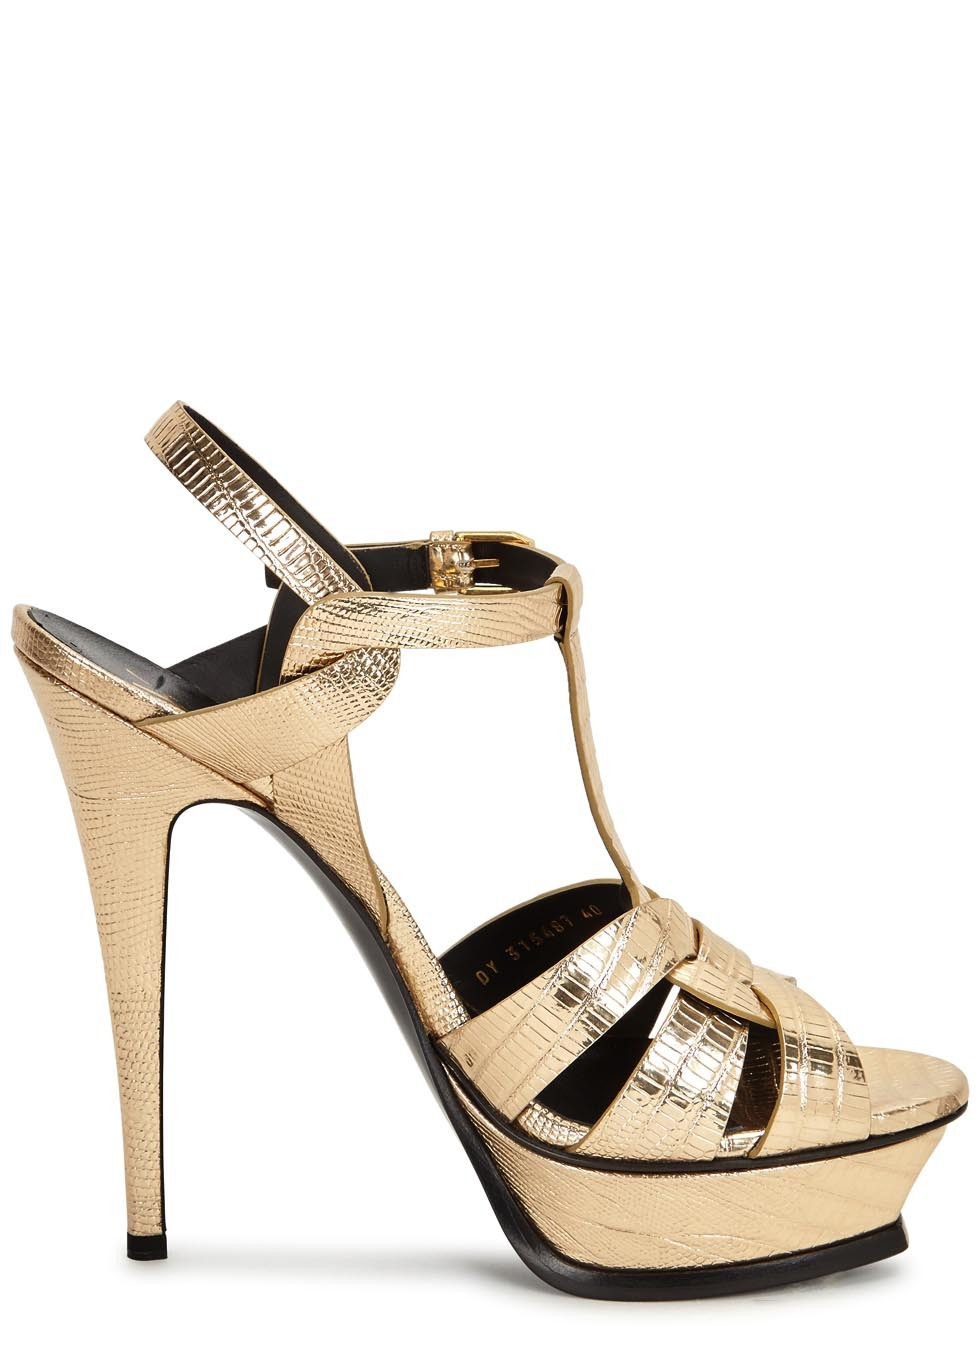 Tribute Gold Lizard Embossed Sandals - predominant colour: gold; occasions: evening; material: leather; ankle detail: ankle strap; heel: wedge; toe: open toe/peeptoe; style: strappy; finish: metallic; pattern: plain; heel height: very high; shoe detail: platform; season: a/w 2016; wardrobe: event